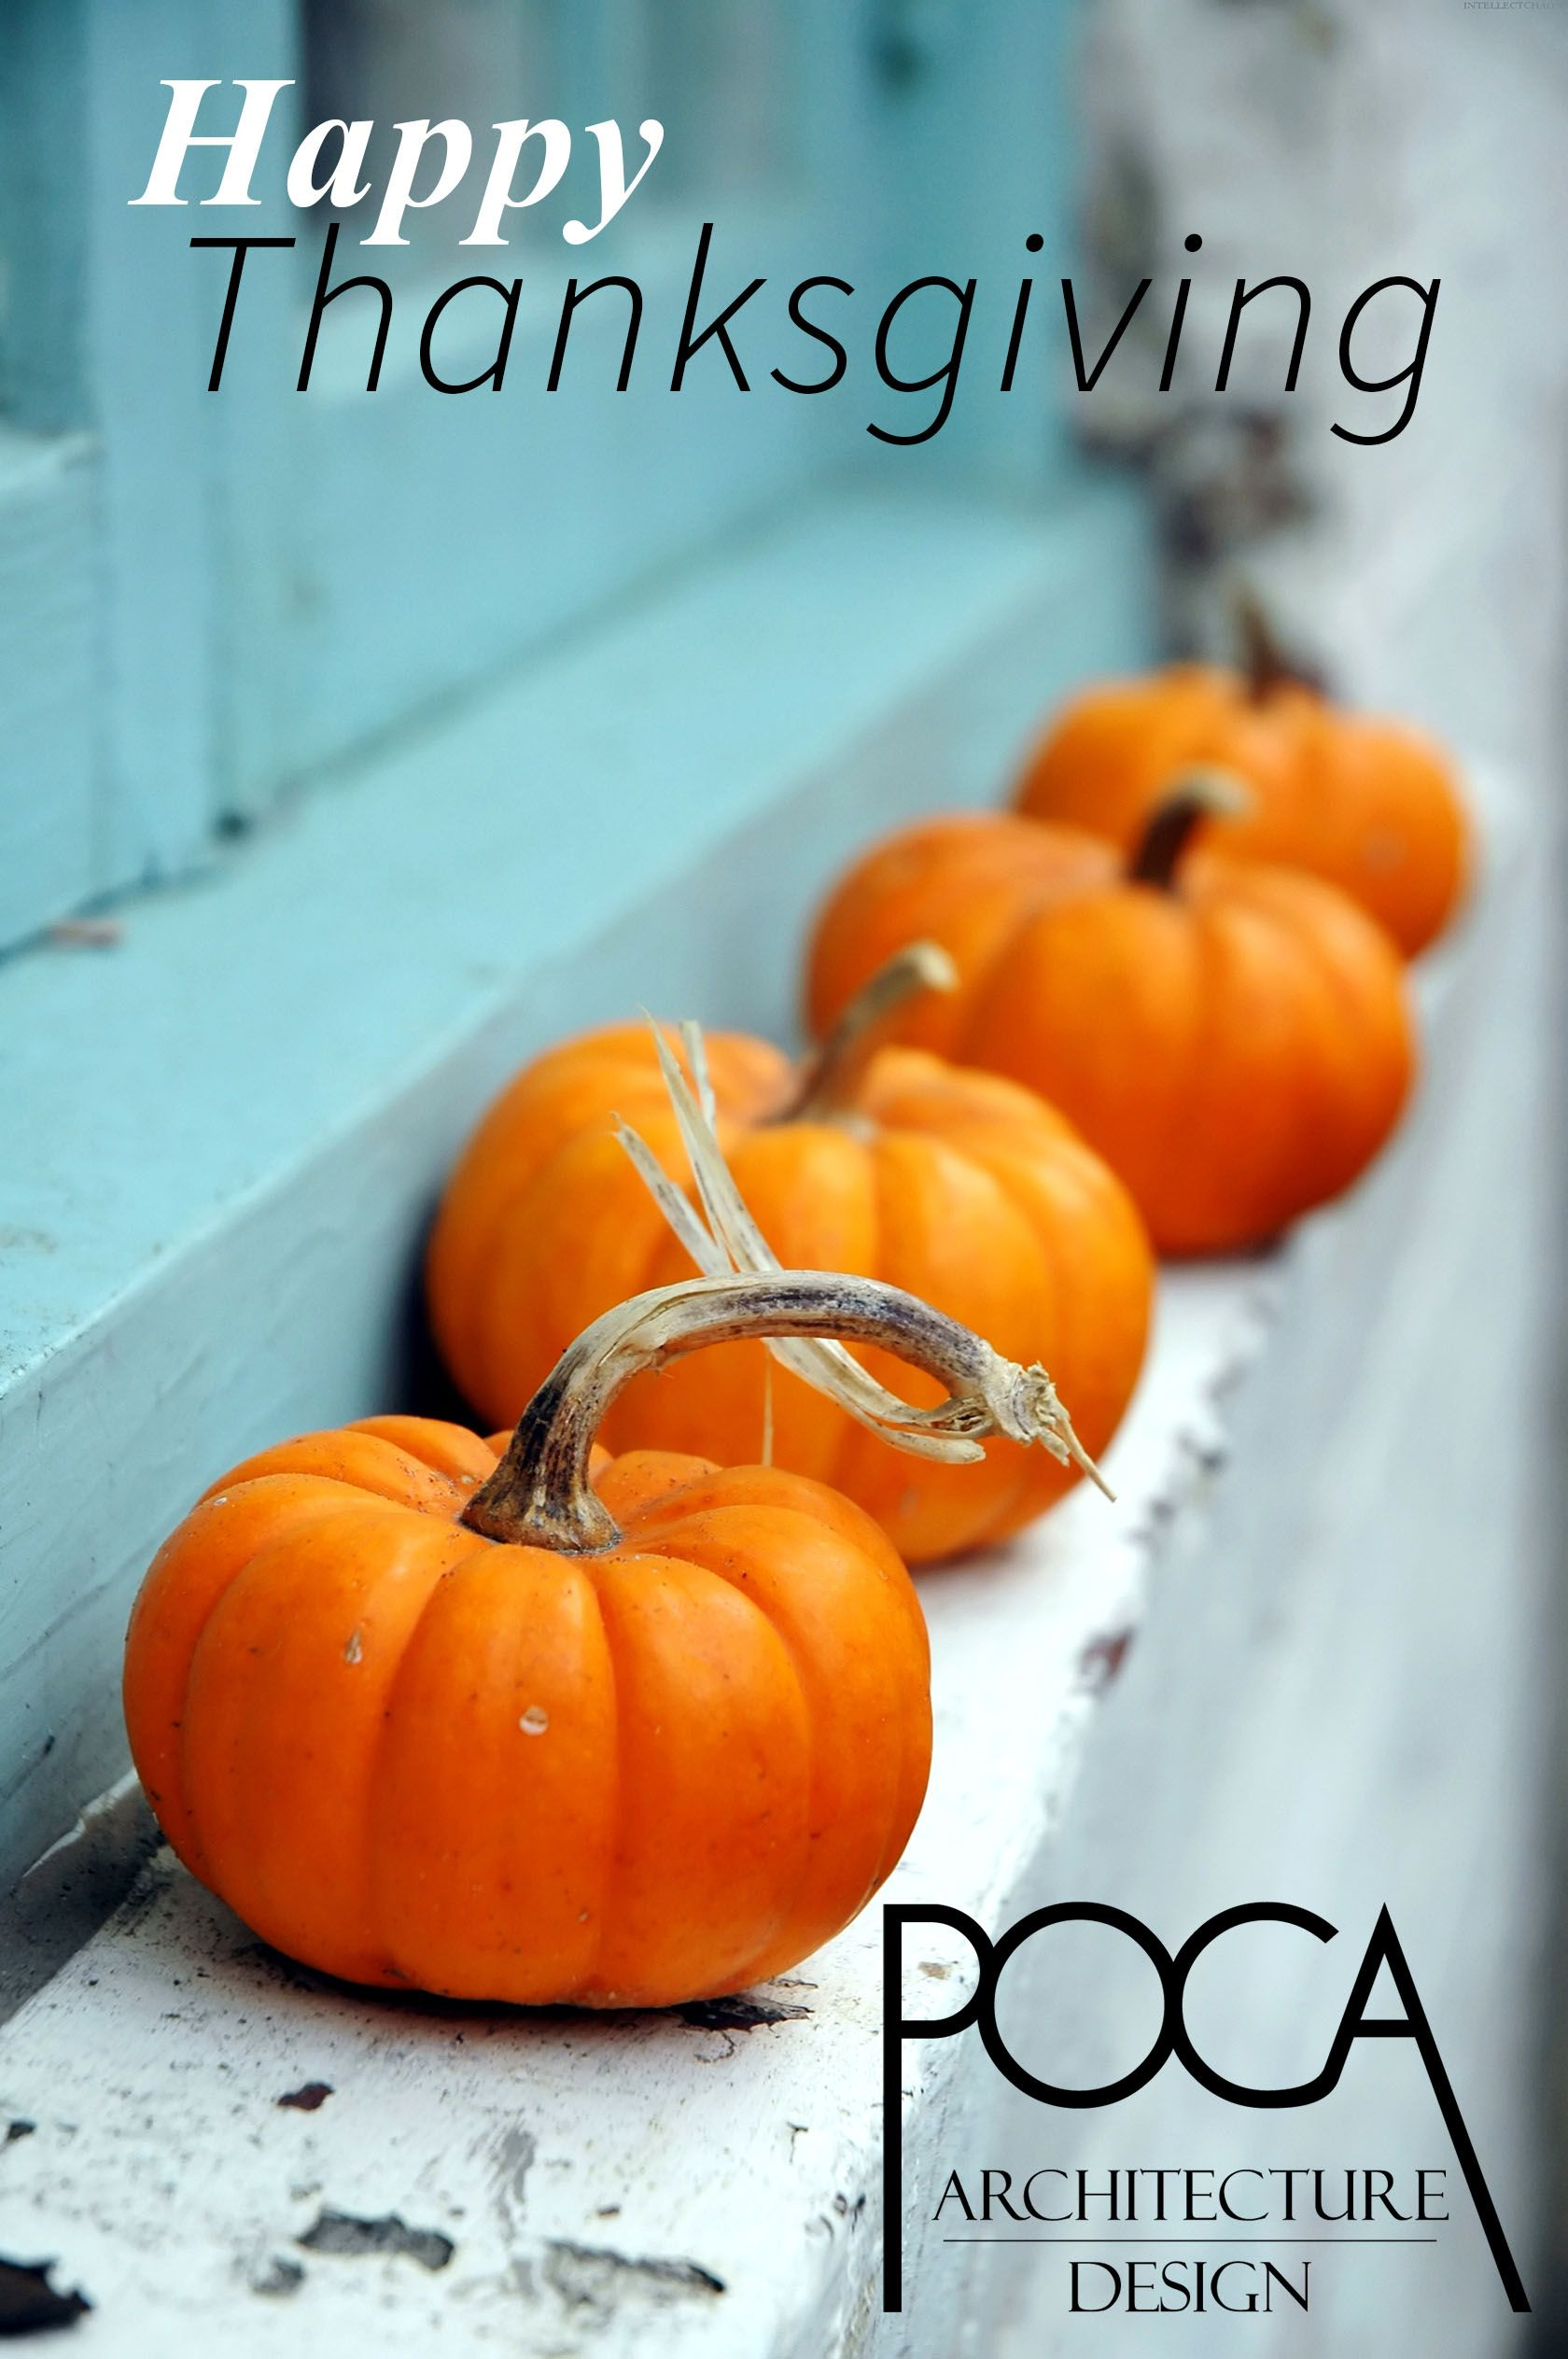 Happy Thanksgiving From all of us at POCAaz Architacture + Design ...